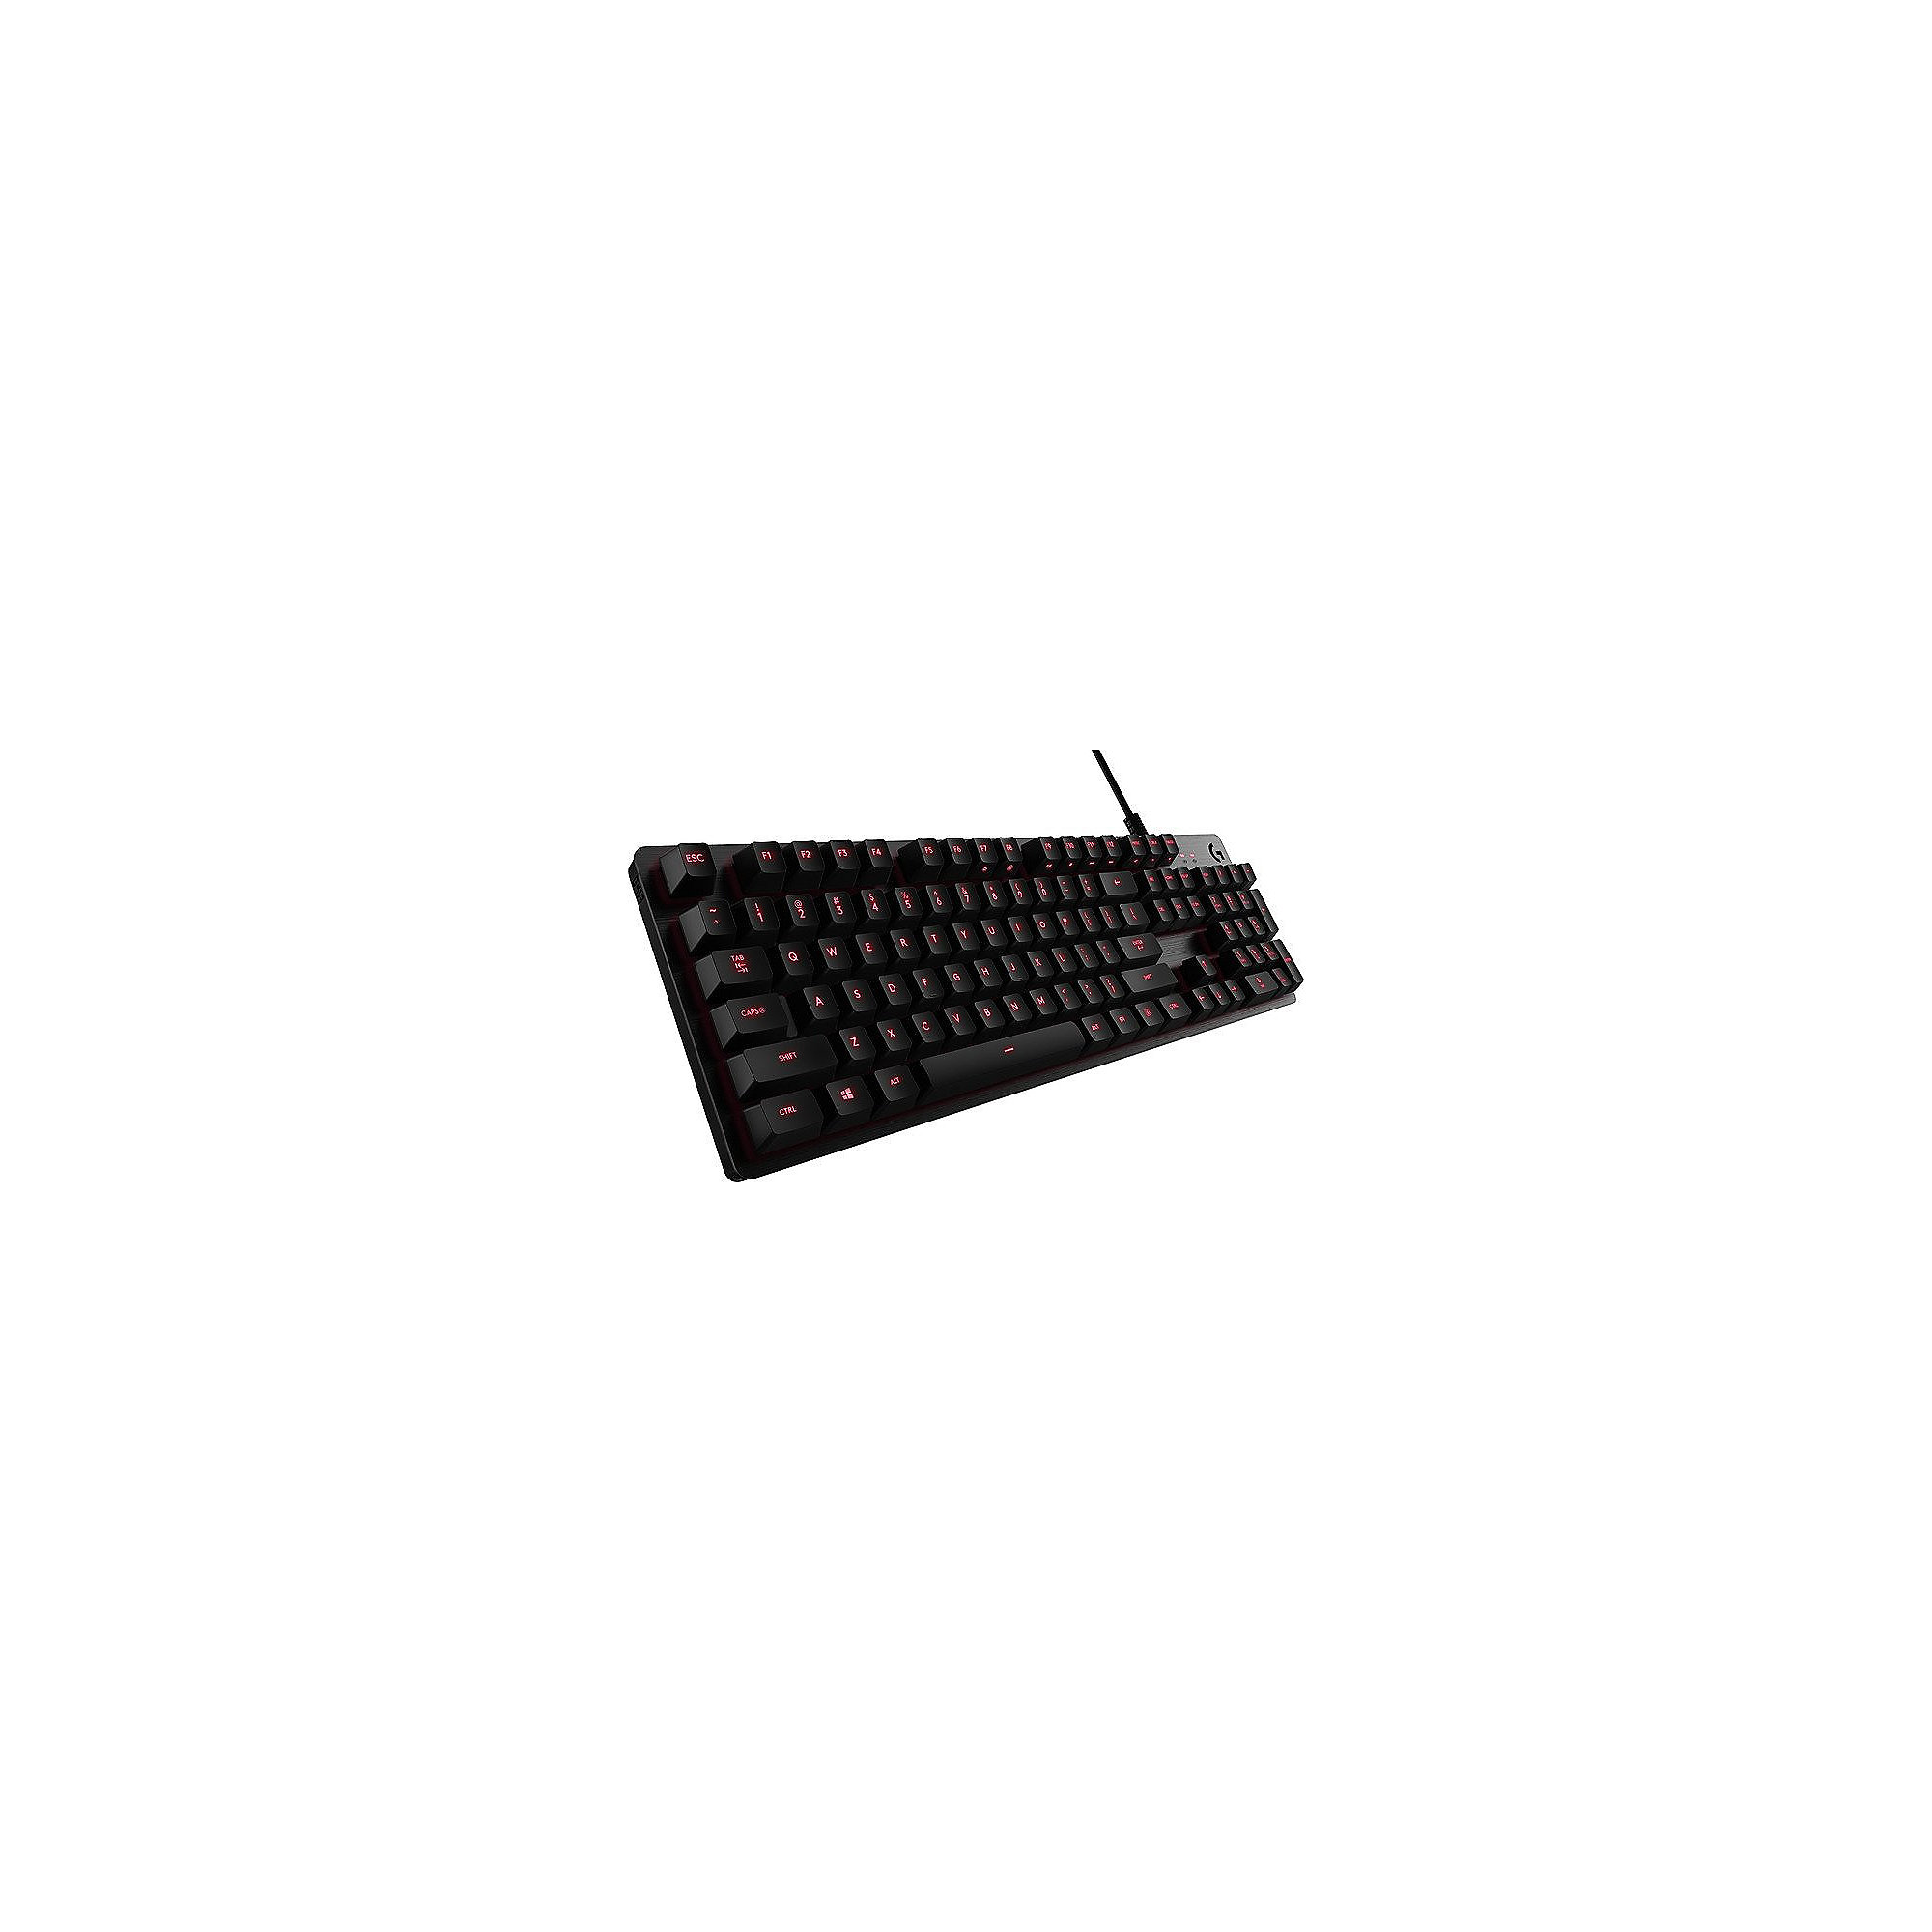 Logitech G413 Carbon USB Gaming Keyboard